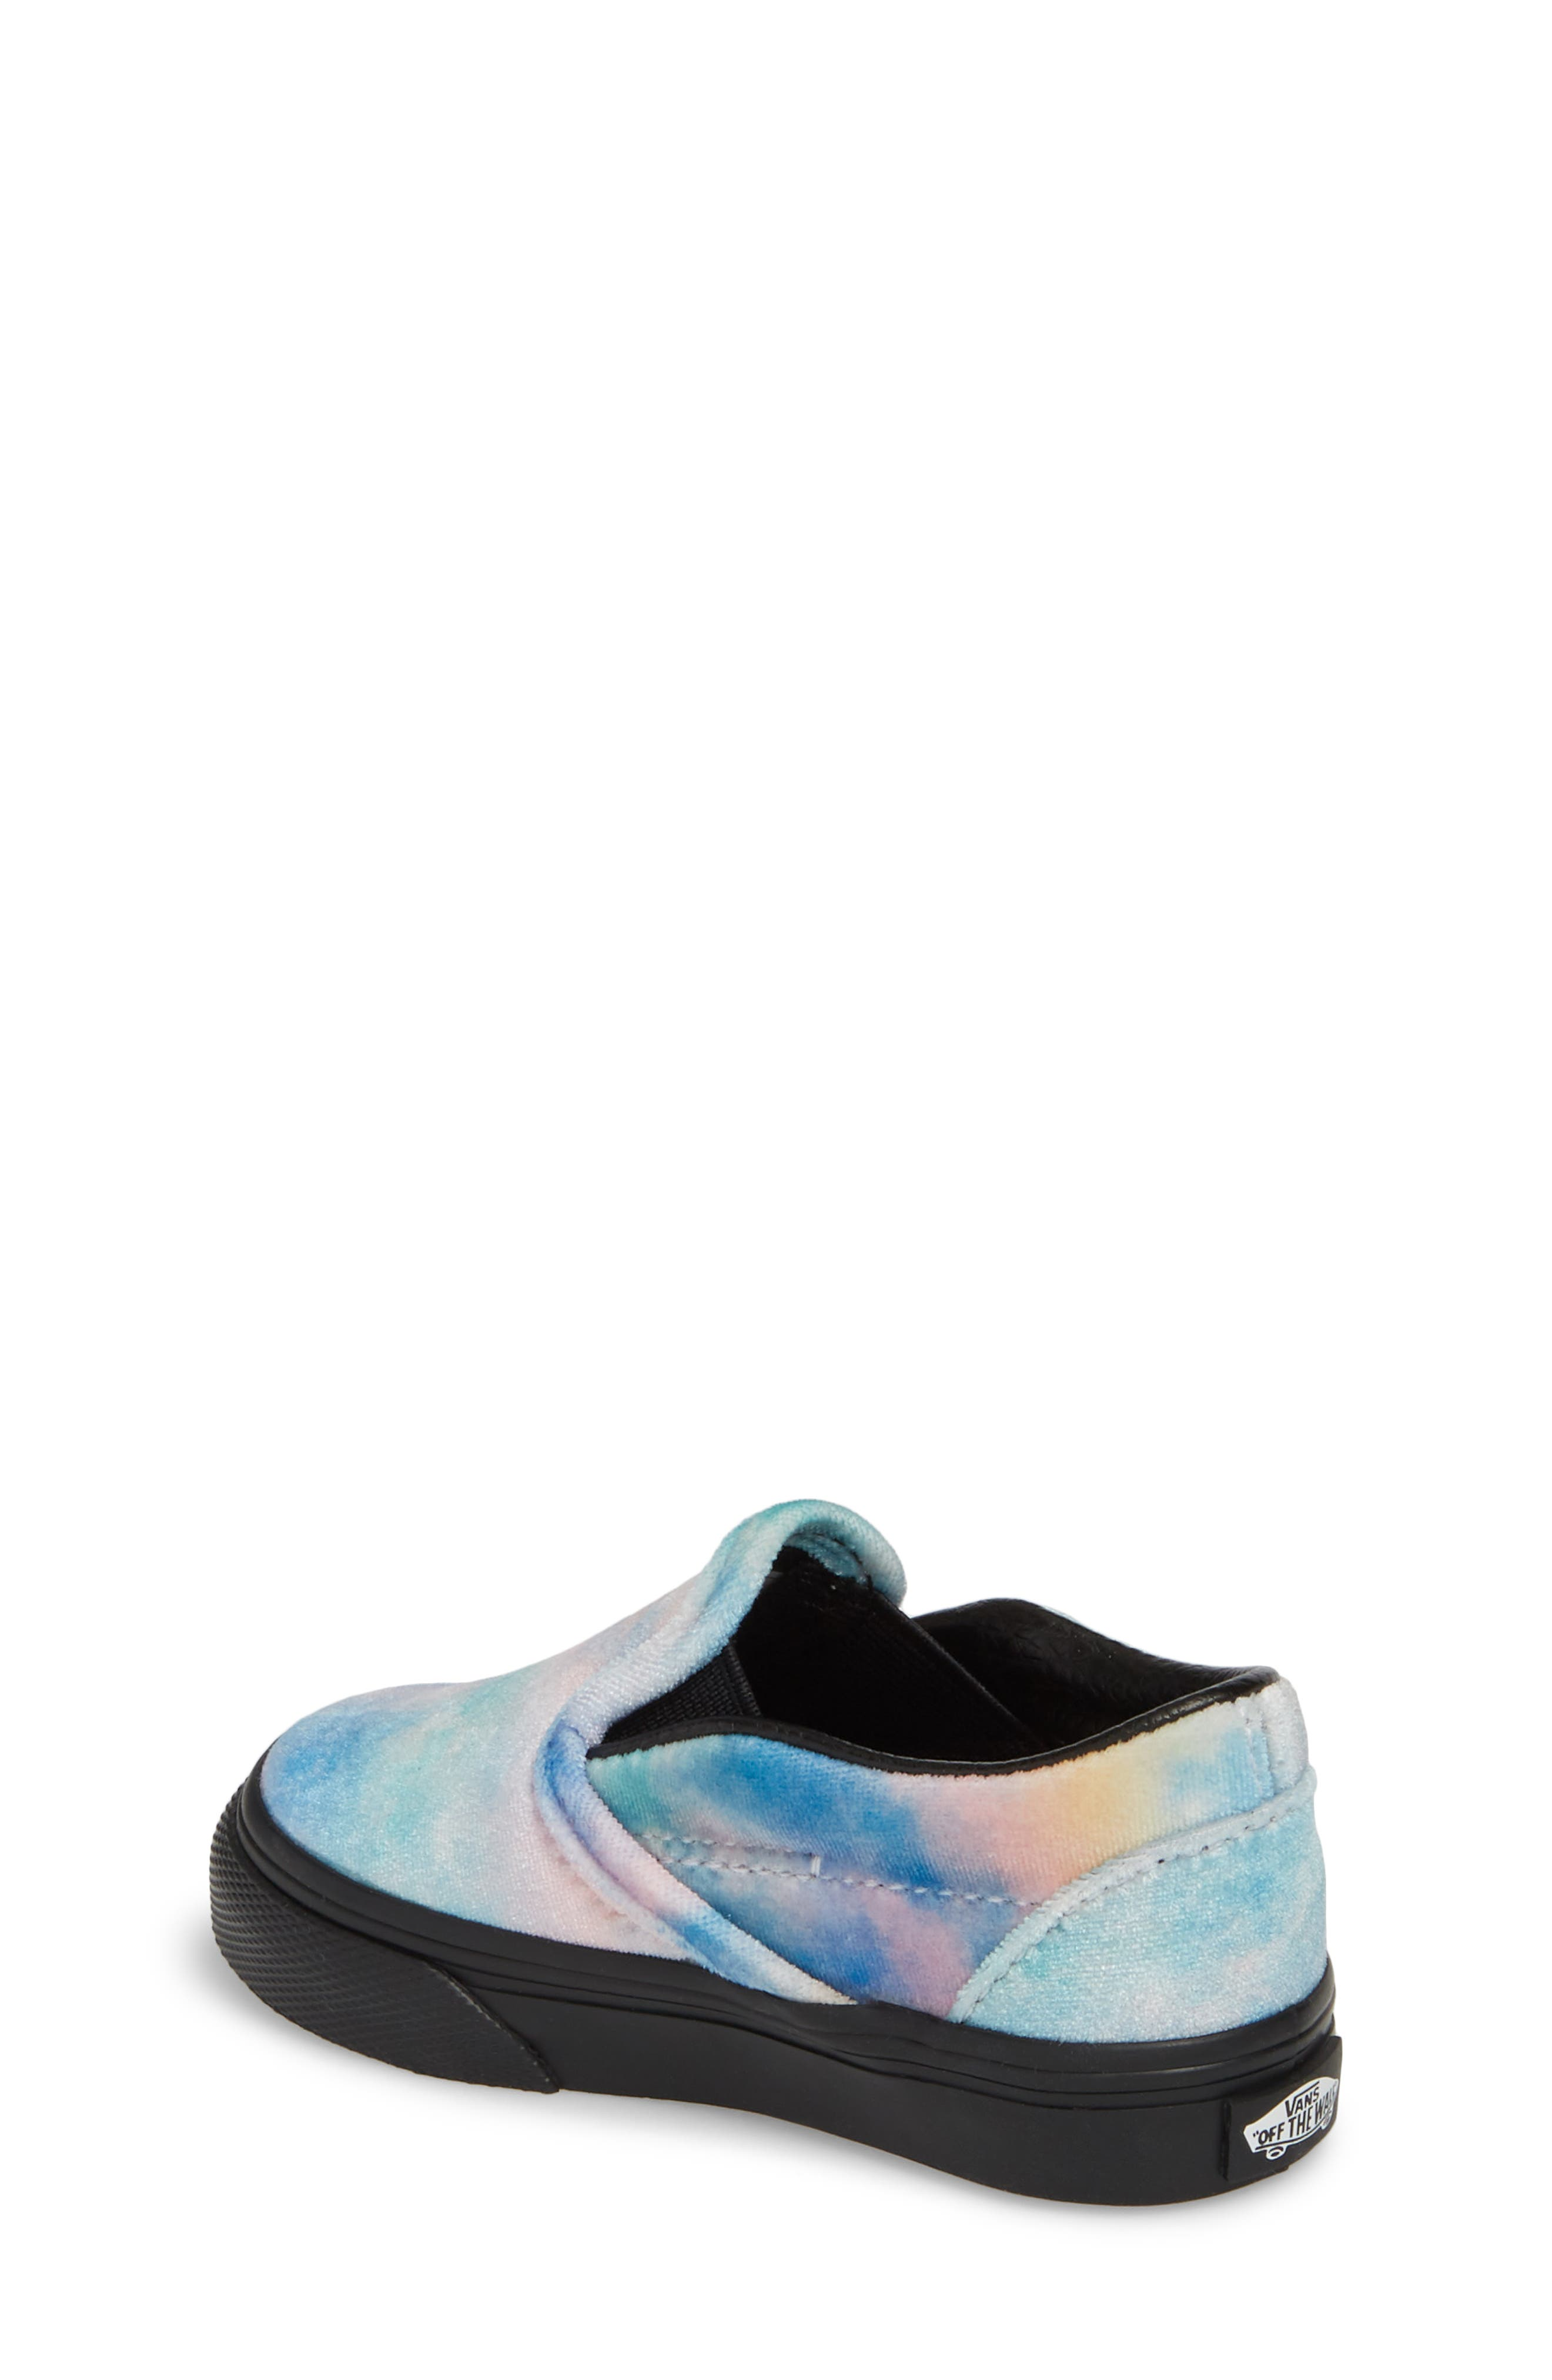 Classic Velvet Tie Dye Slip-On Sneaker,                             Alternate thumbnail 2, color,                             001